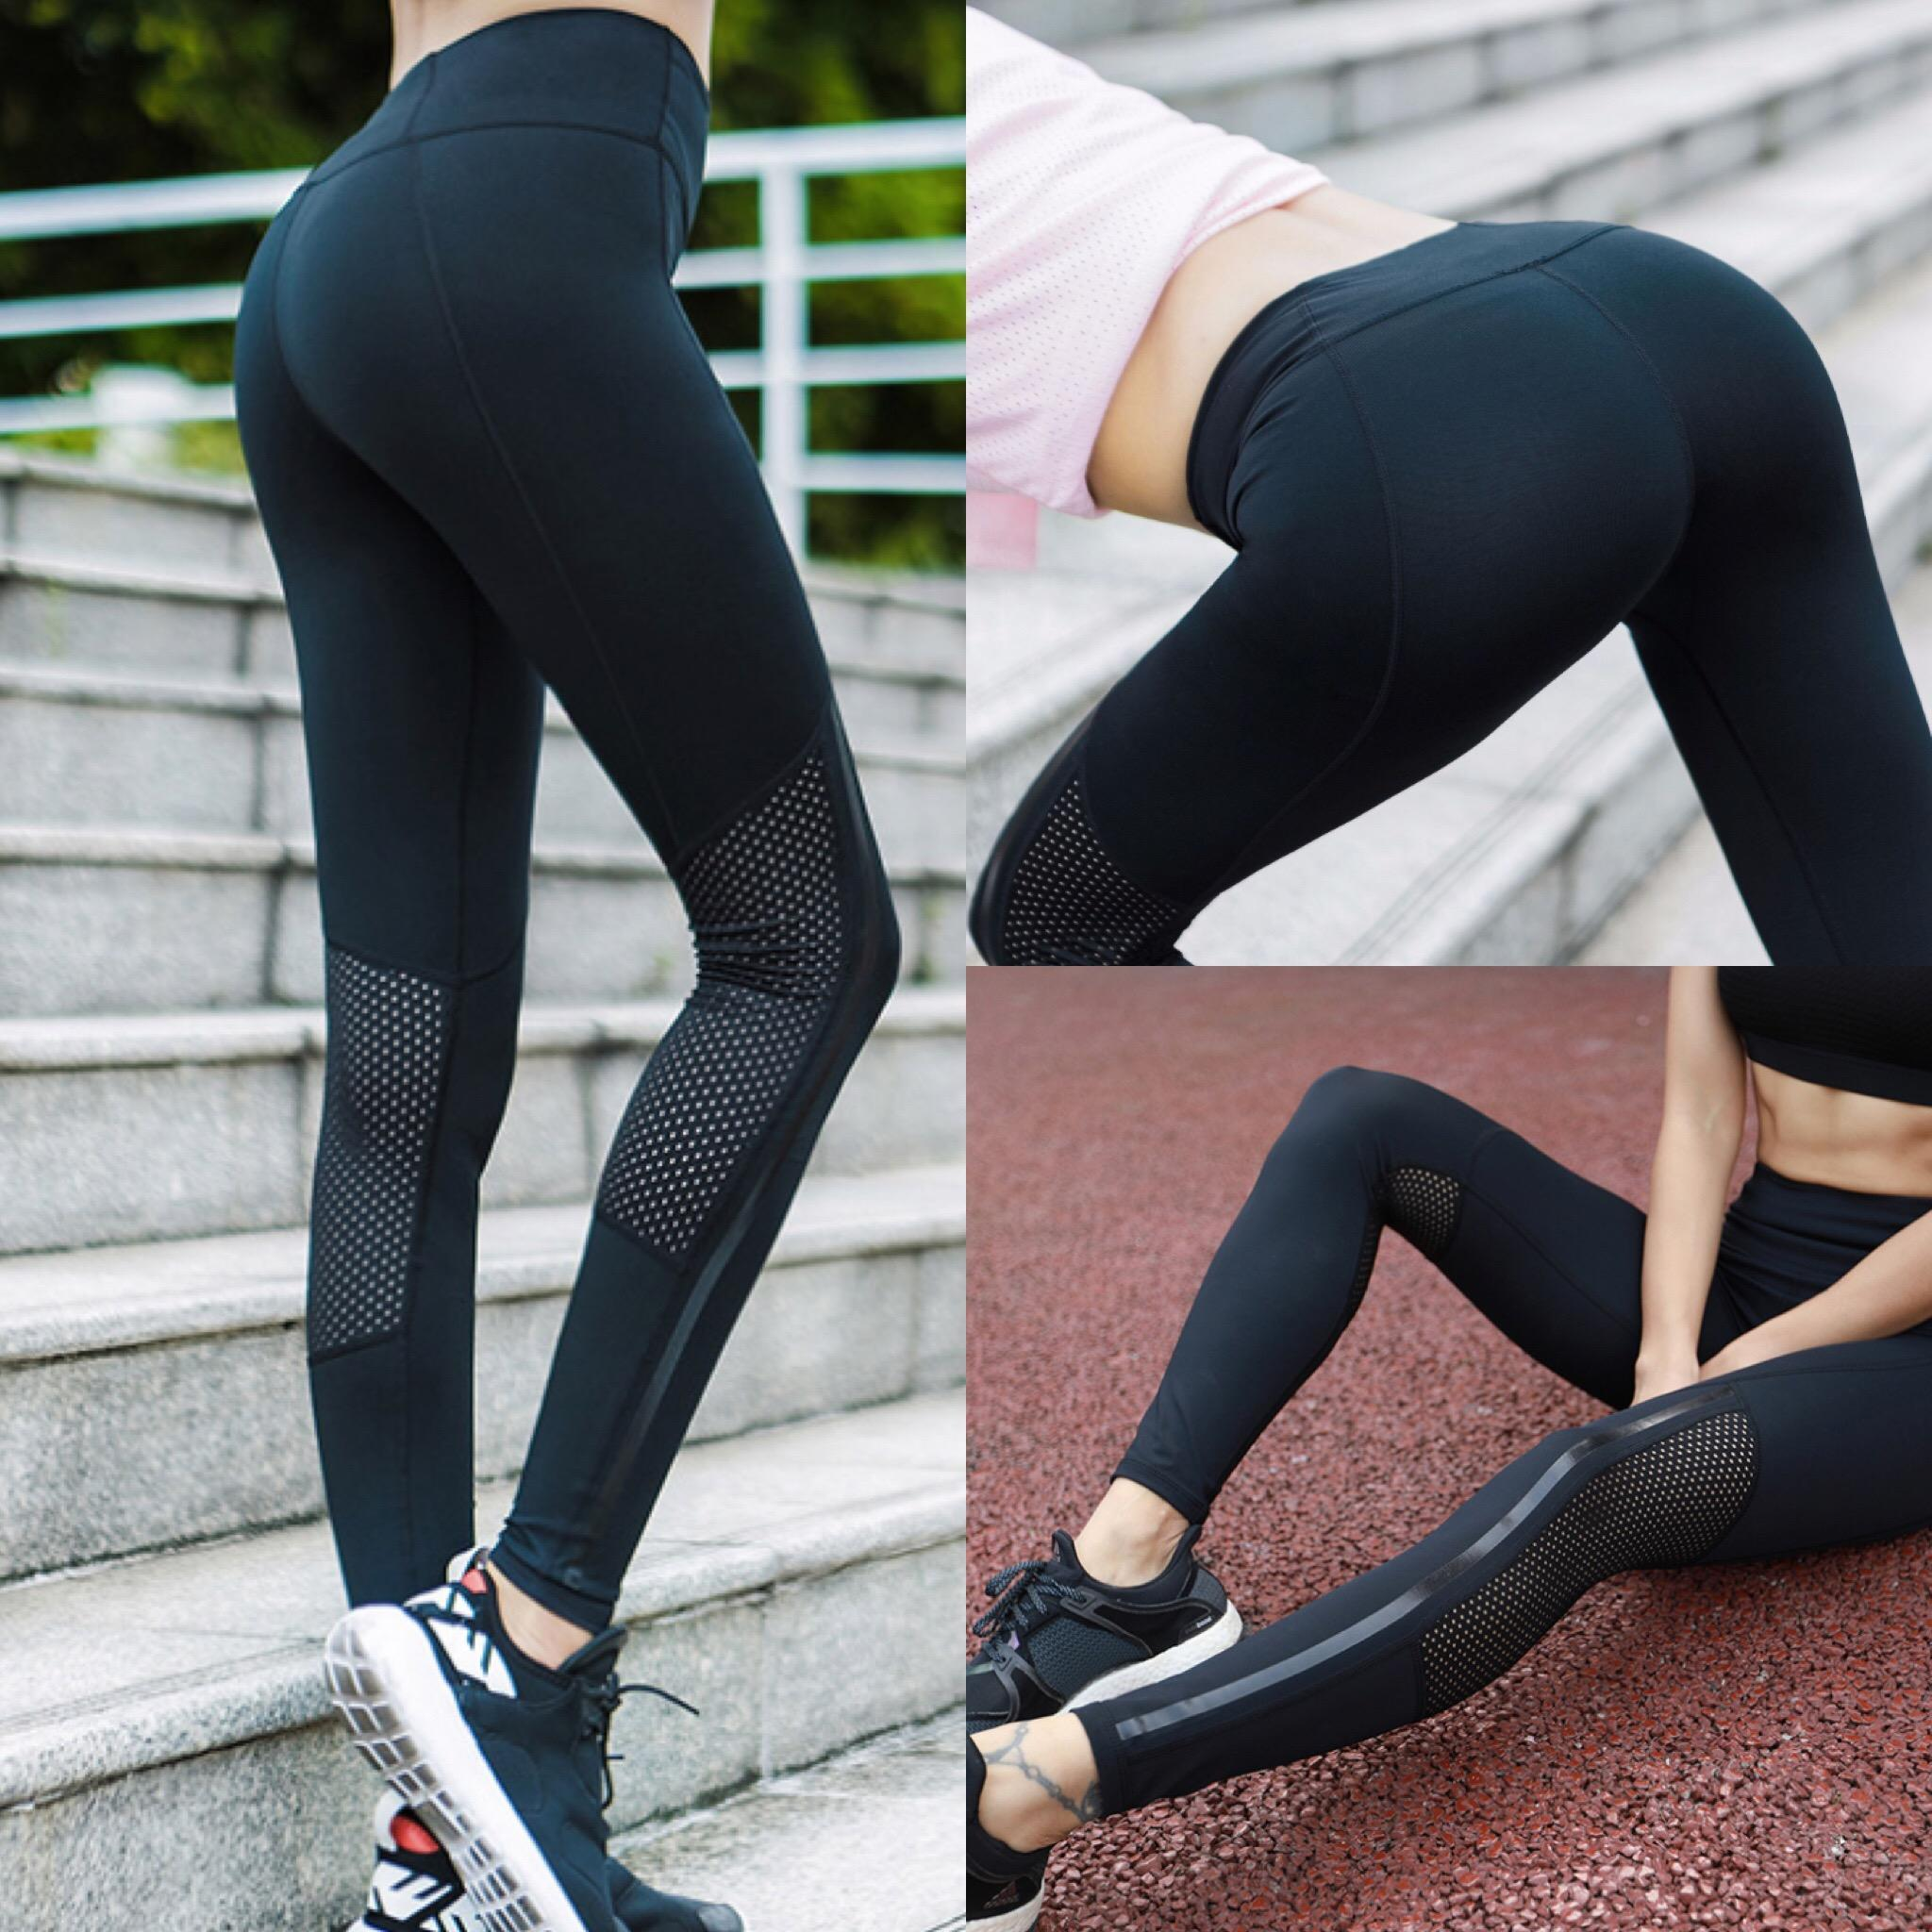 947b3c0f50 High Quality Fitness Gym Leggings Pants High Waist Women Sports Leggings  Elastic Yoga Pants Hollow Out Design Capris Online with $15.54/Piece on ...